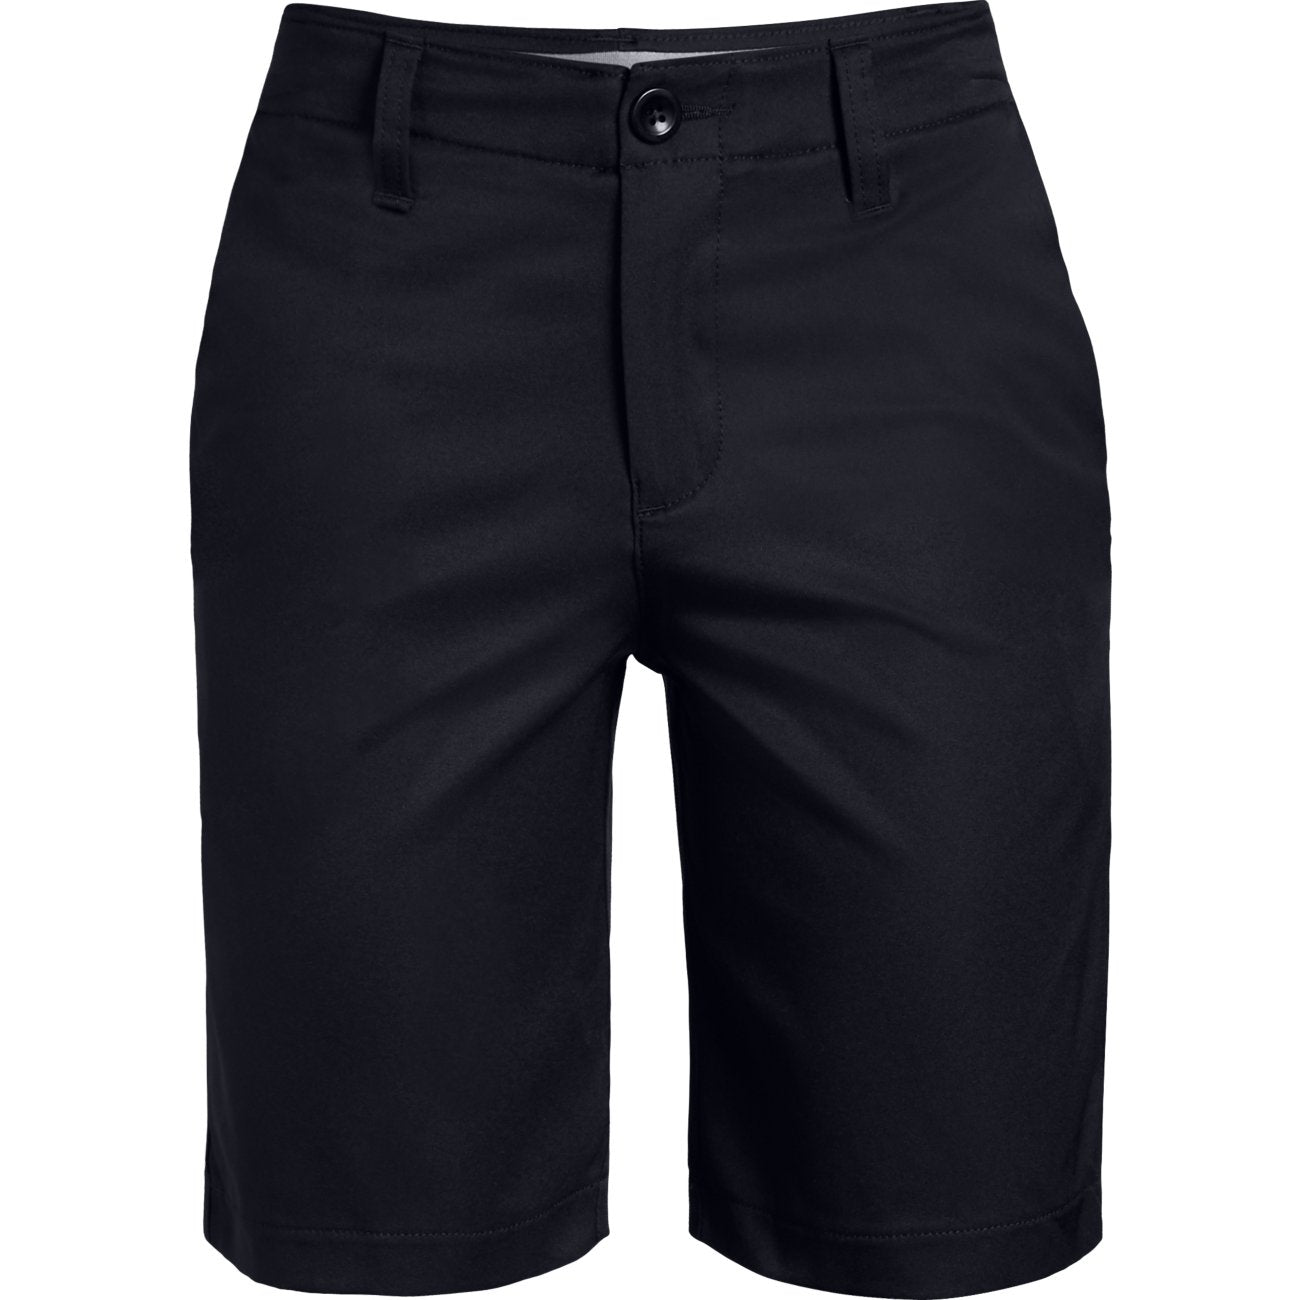 Under Armour Black Match Play 2.0 Short